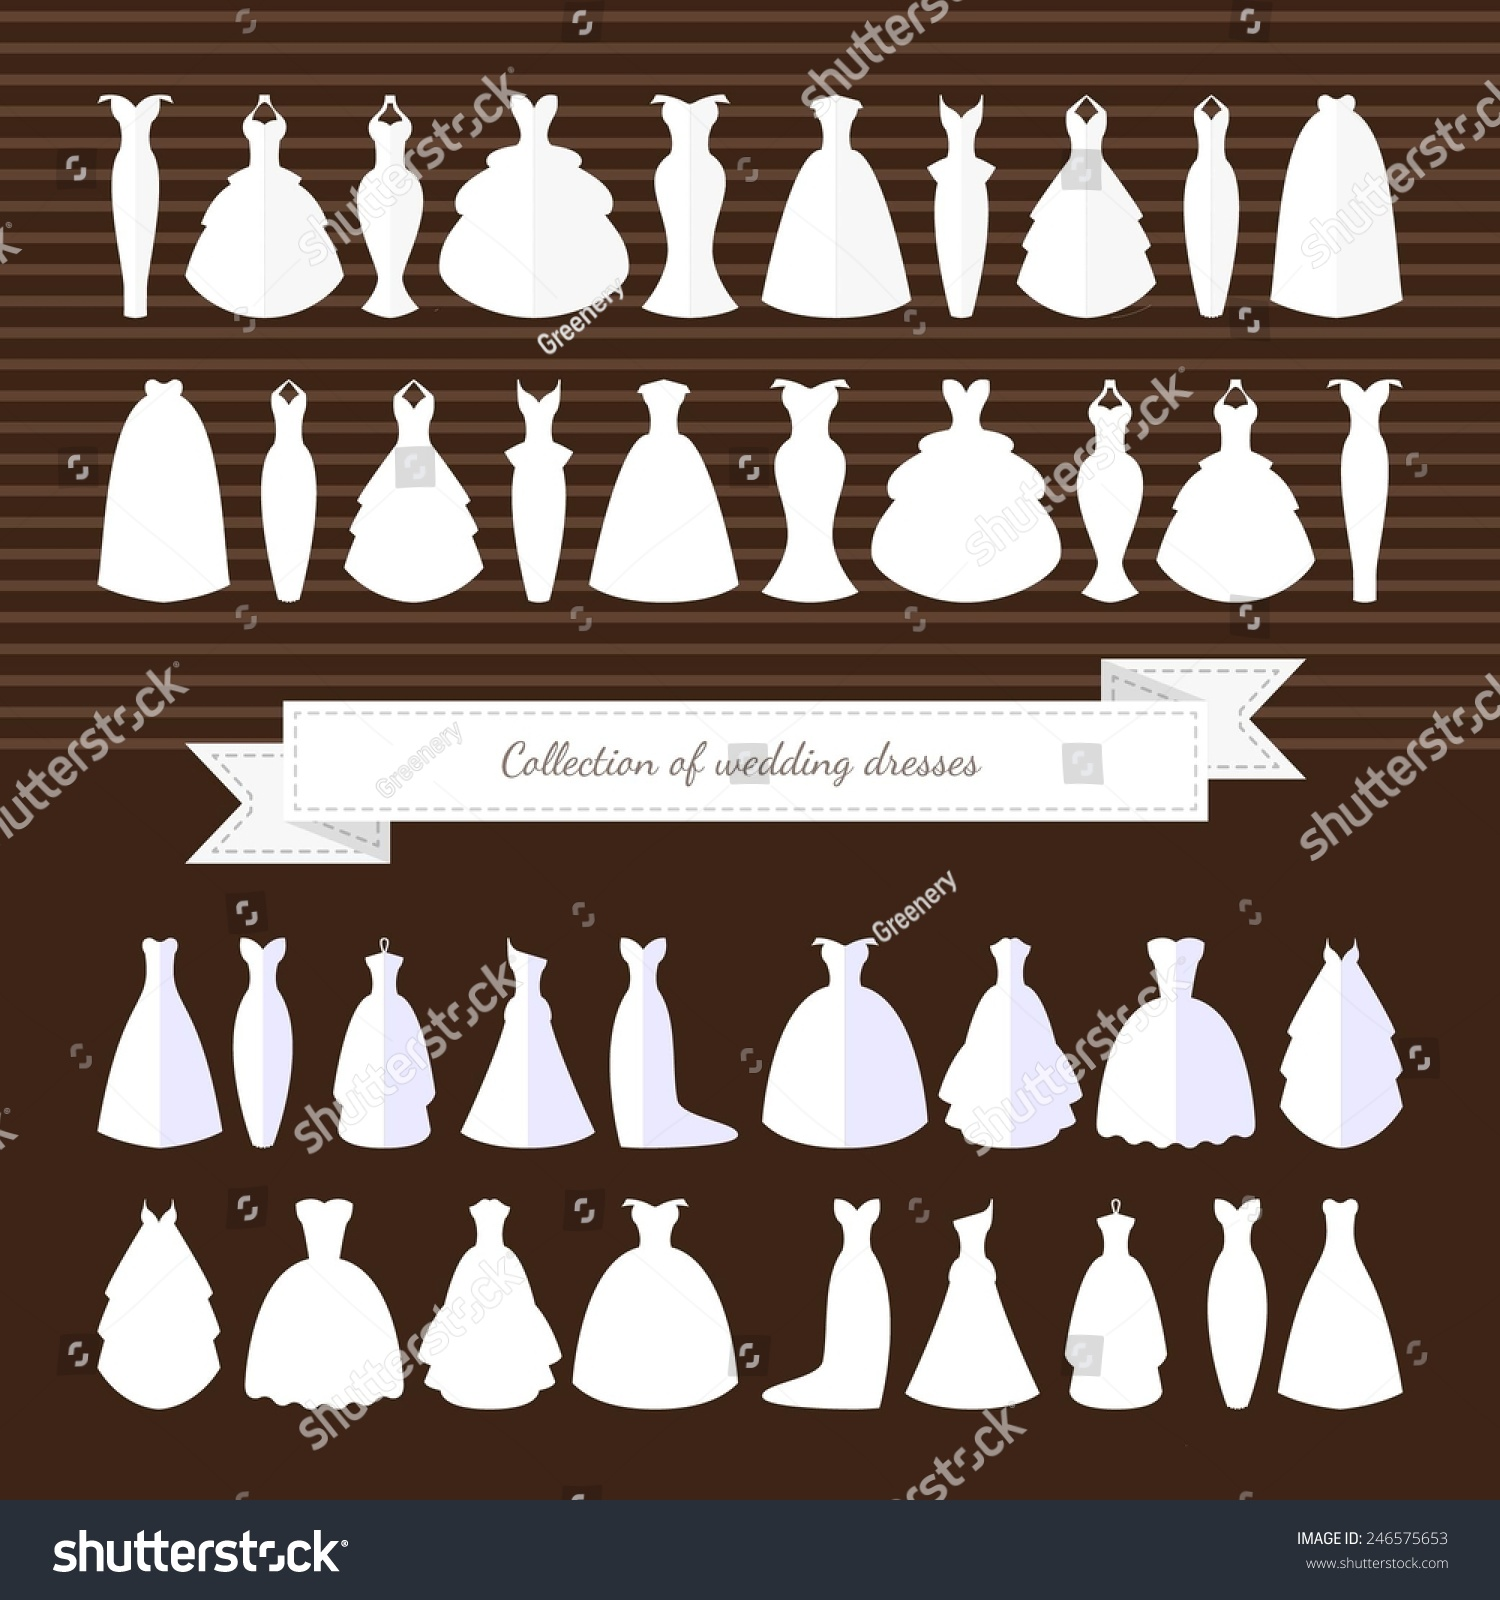 Different Styles Wedding Dresses Made In Modern Flat